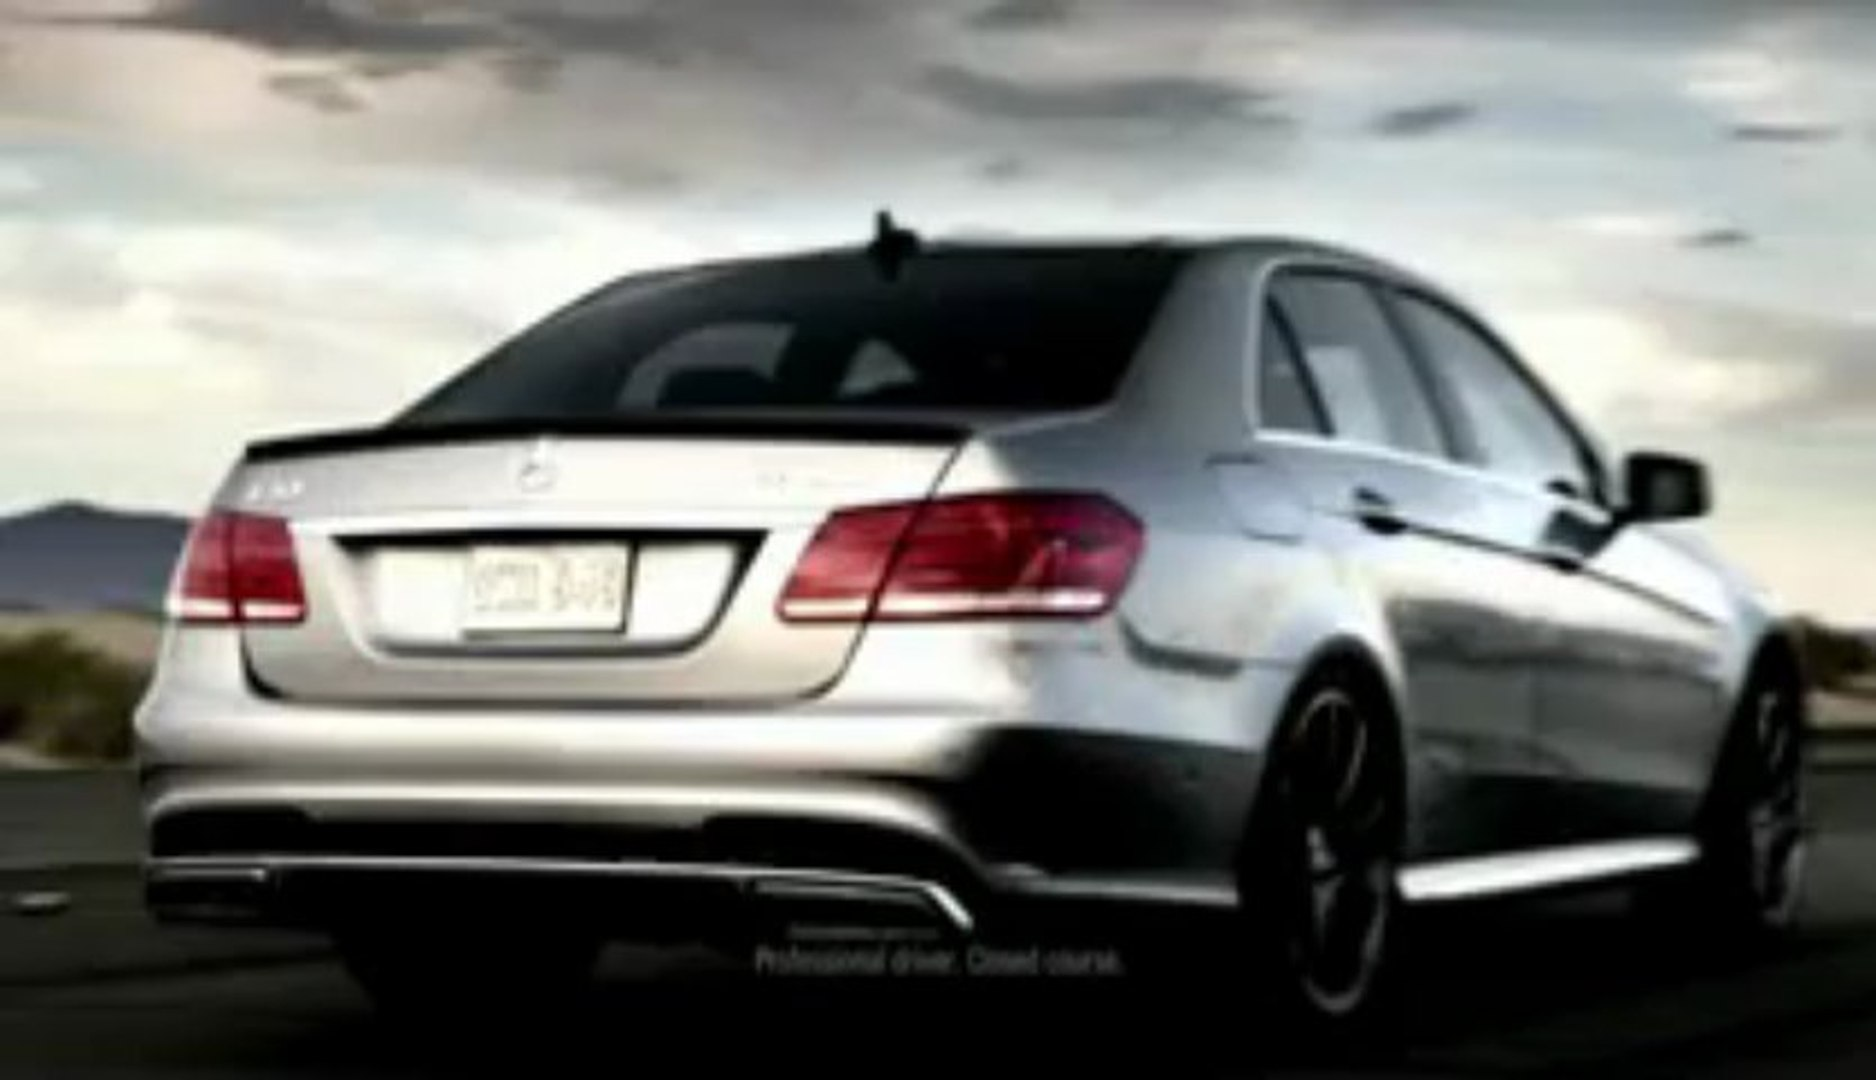 Mercedes Benz E-Class East Hanover NJ | Lease a Mercedes Benz East Hanover NJ